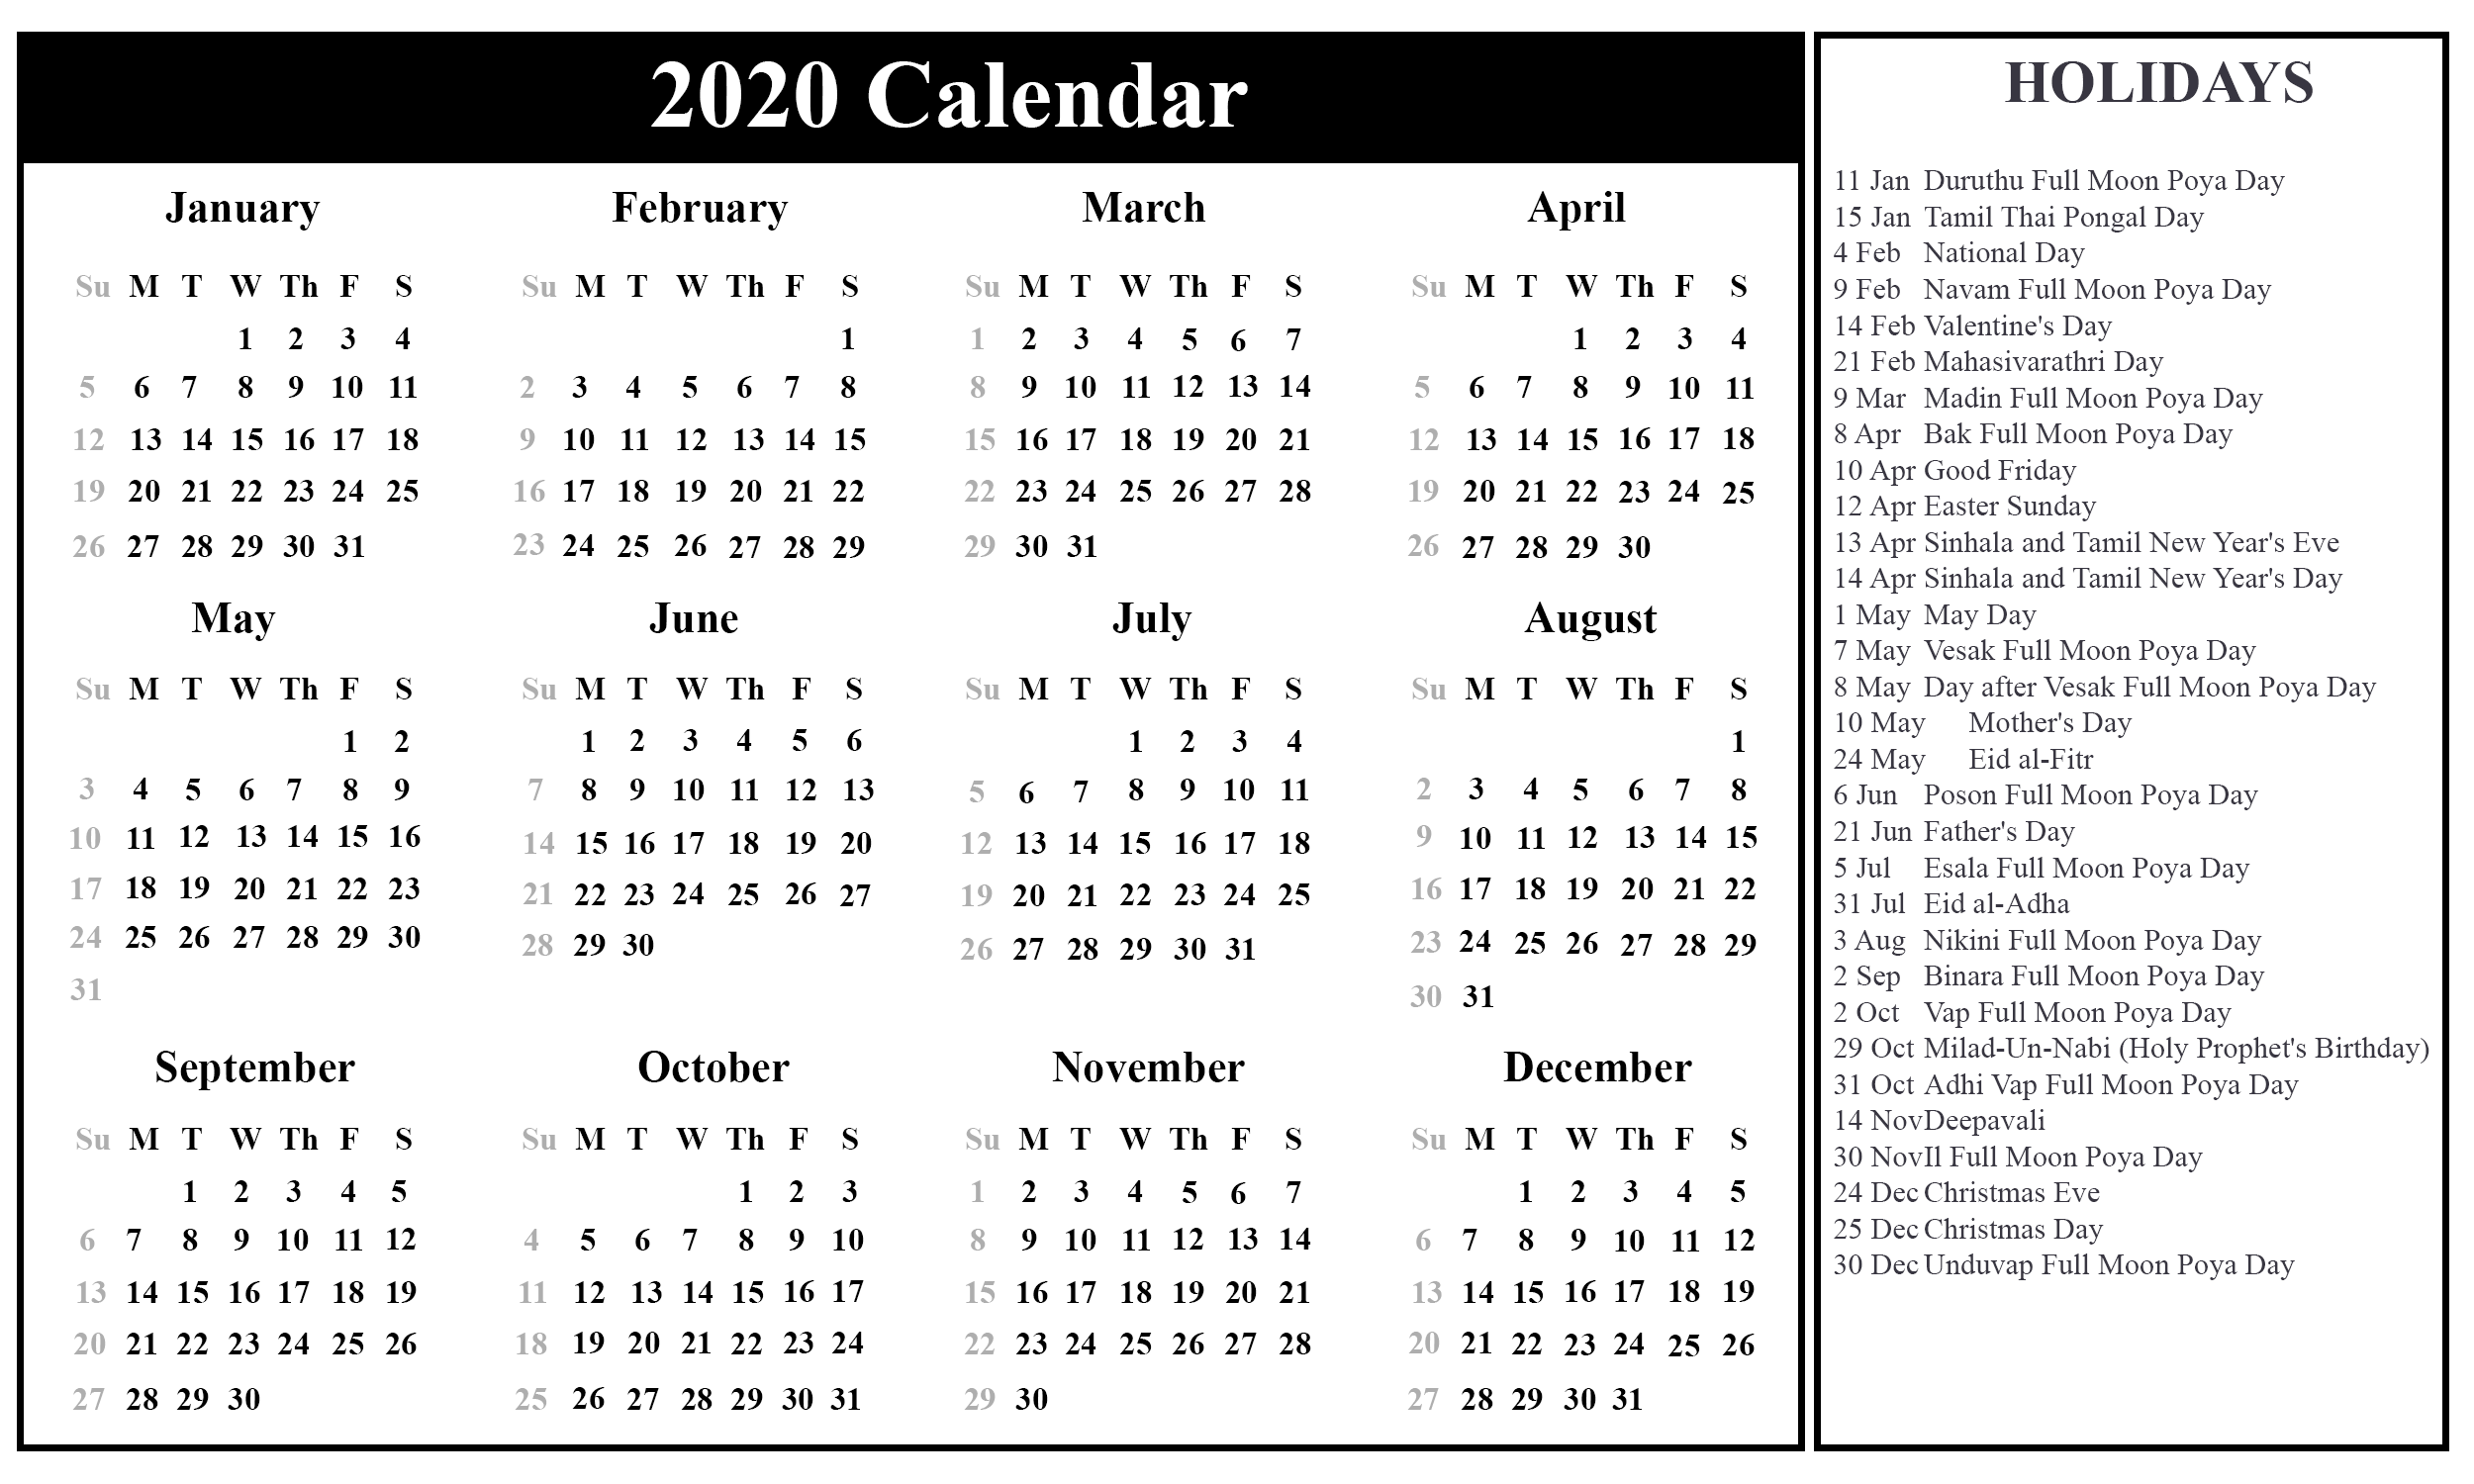 New York Bank Holidays 2020 Free Printable Sri Lanka Calendar 2020 with Holidays in PDF